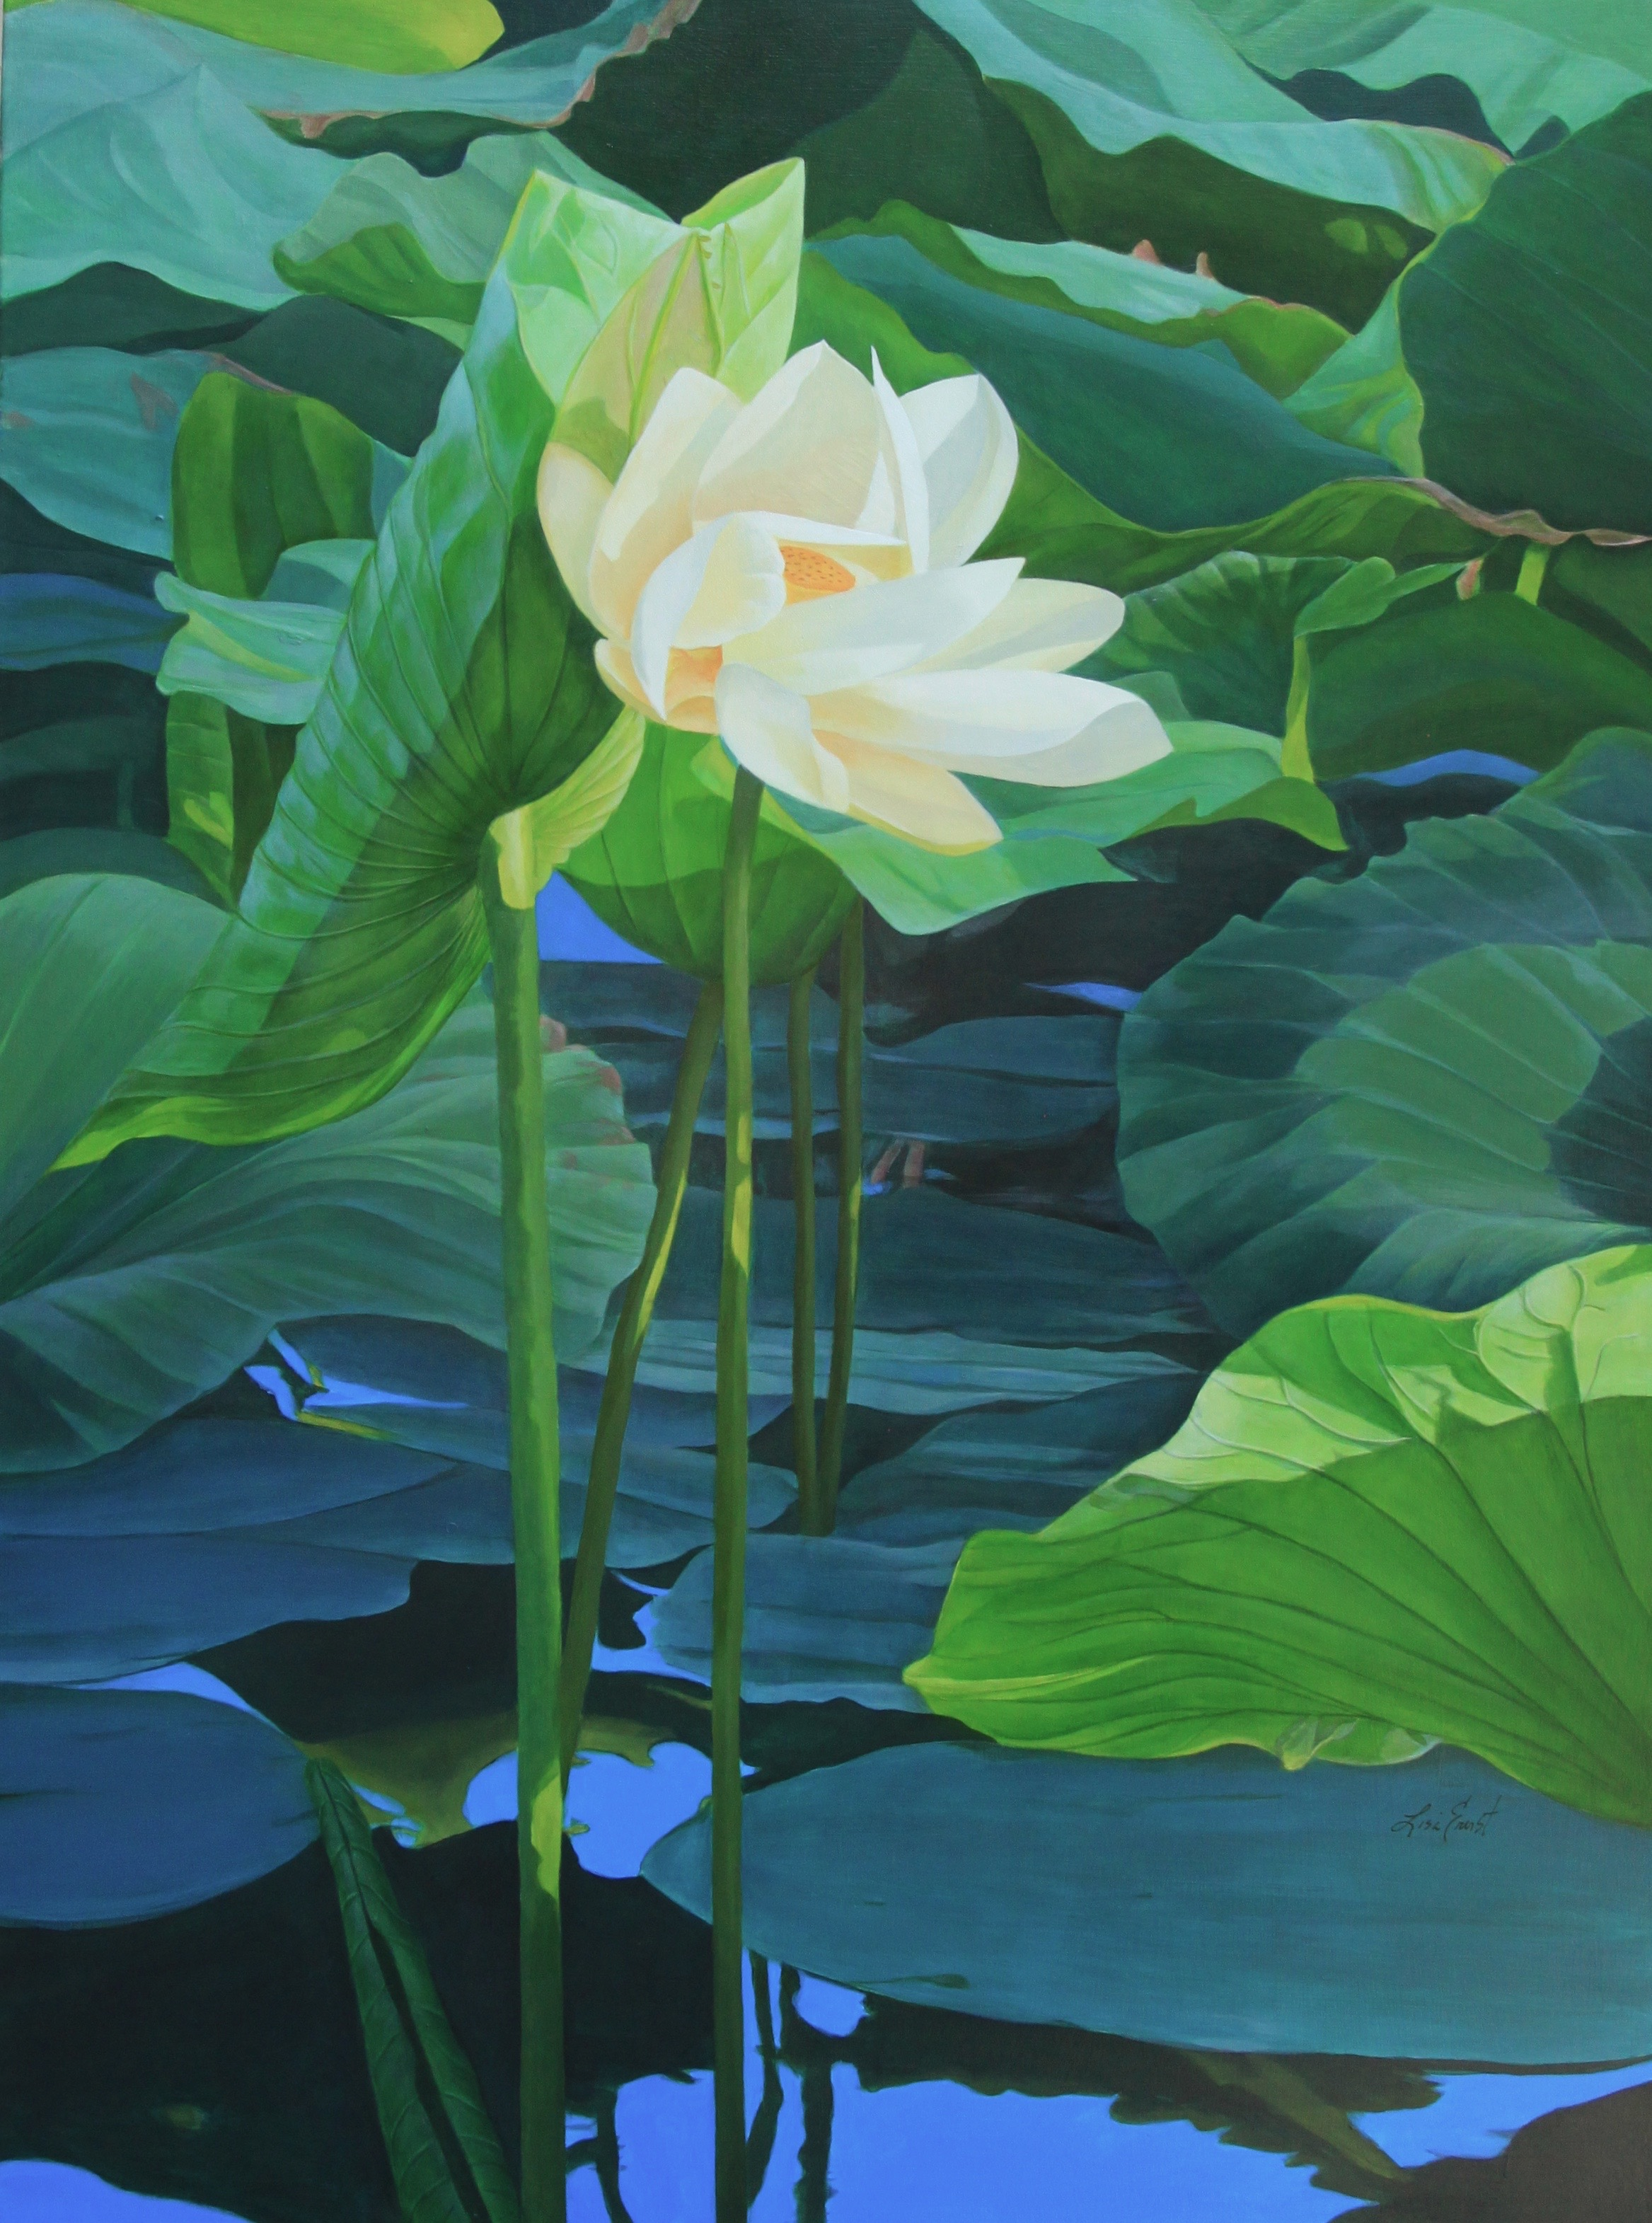 Lotus flowers and opening exhibit at franklins first friday art reelfoot lake lotus 48 x 36 acrylic on canvas izmirmasajfo